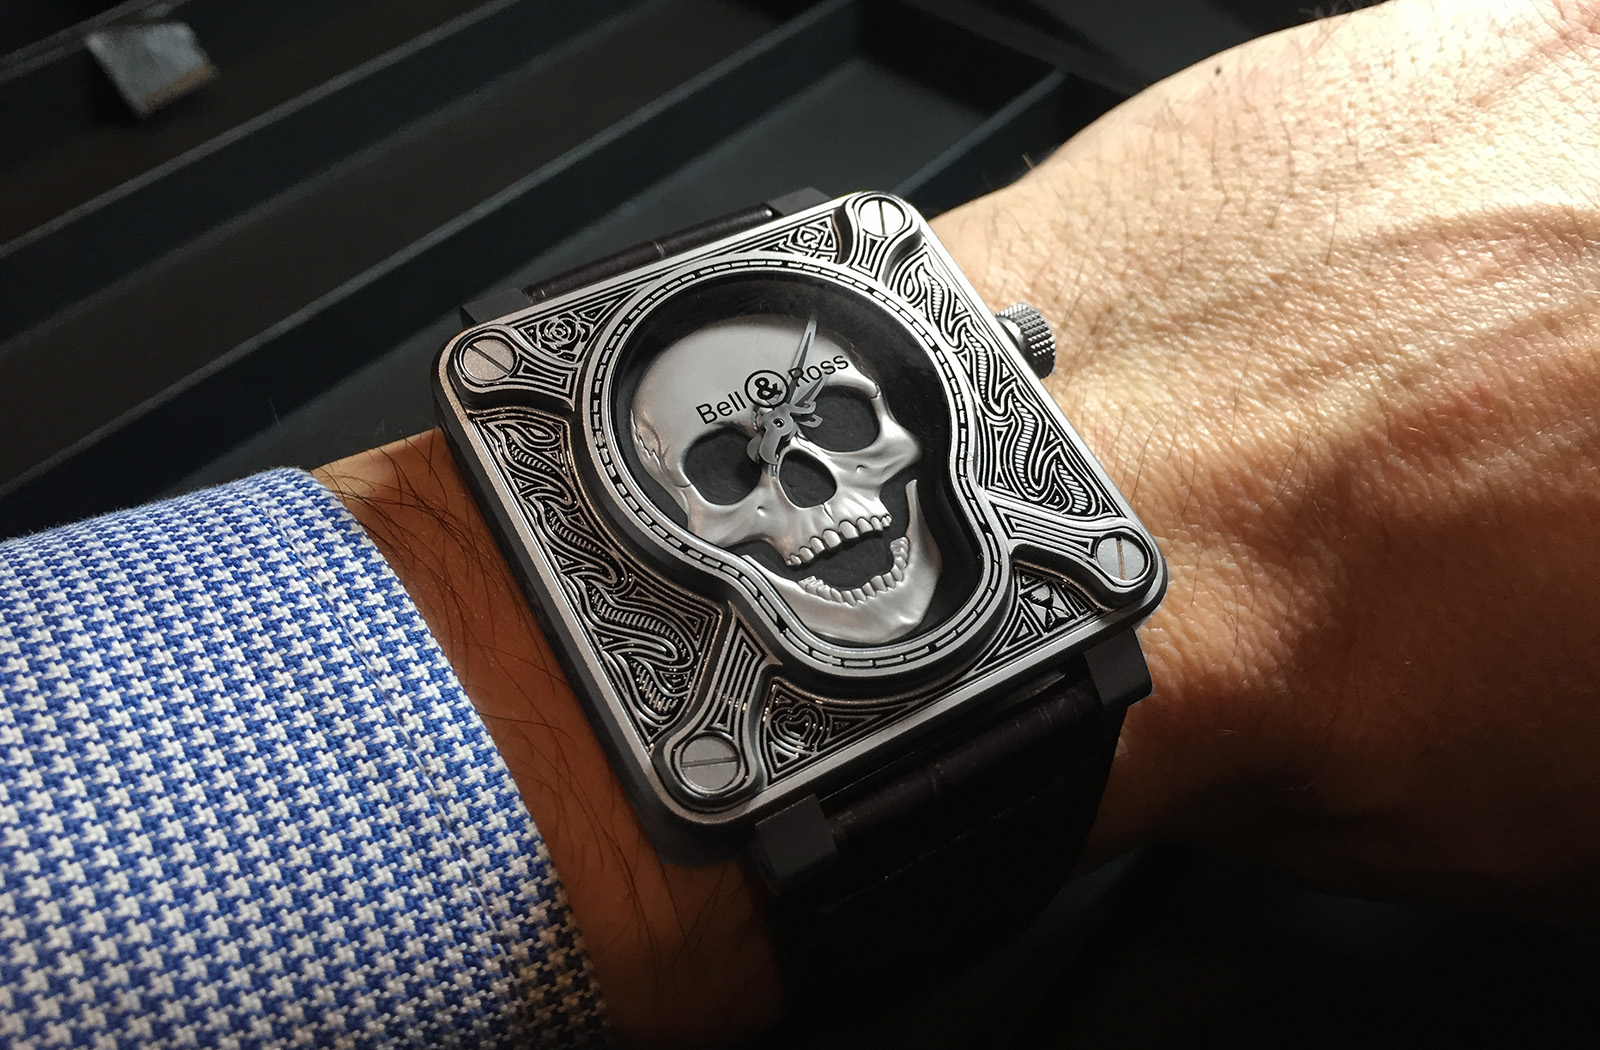 Bell & Ross BR01 Burning Skull - wrist